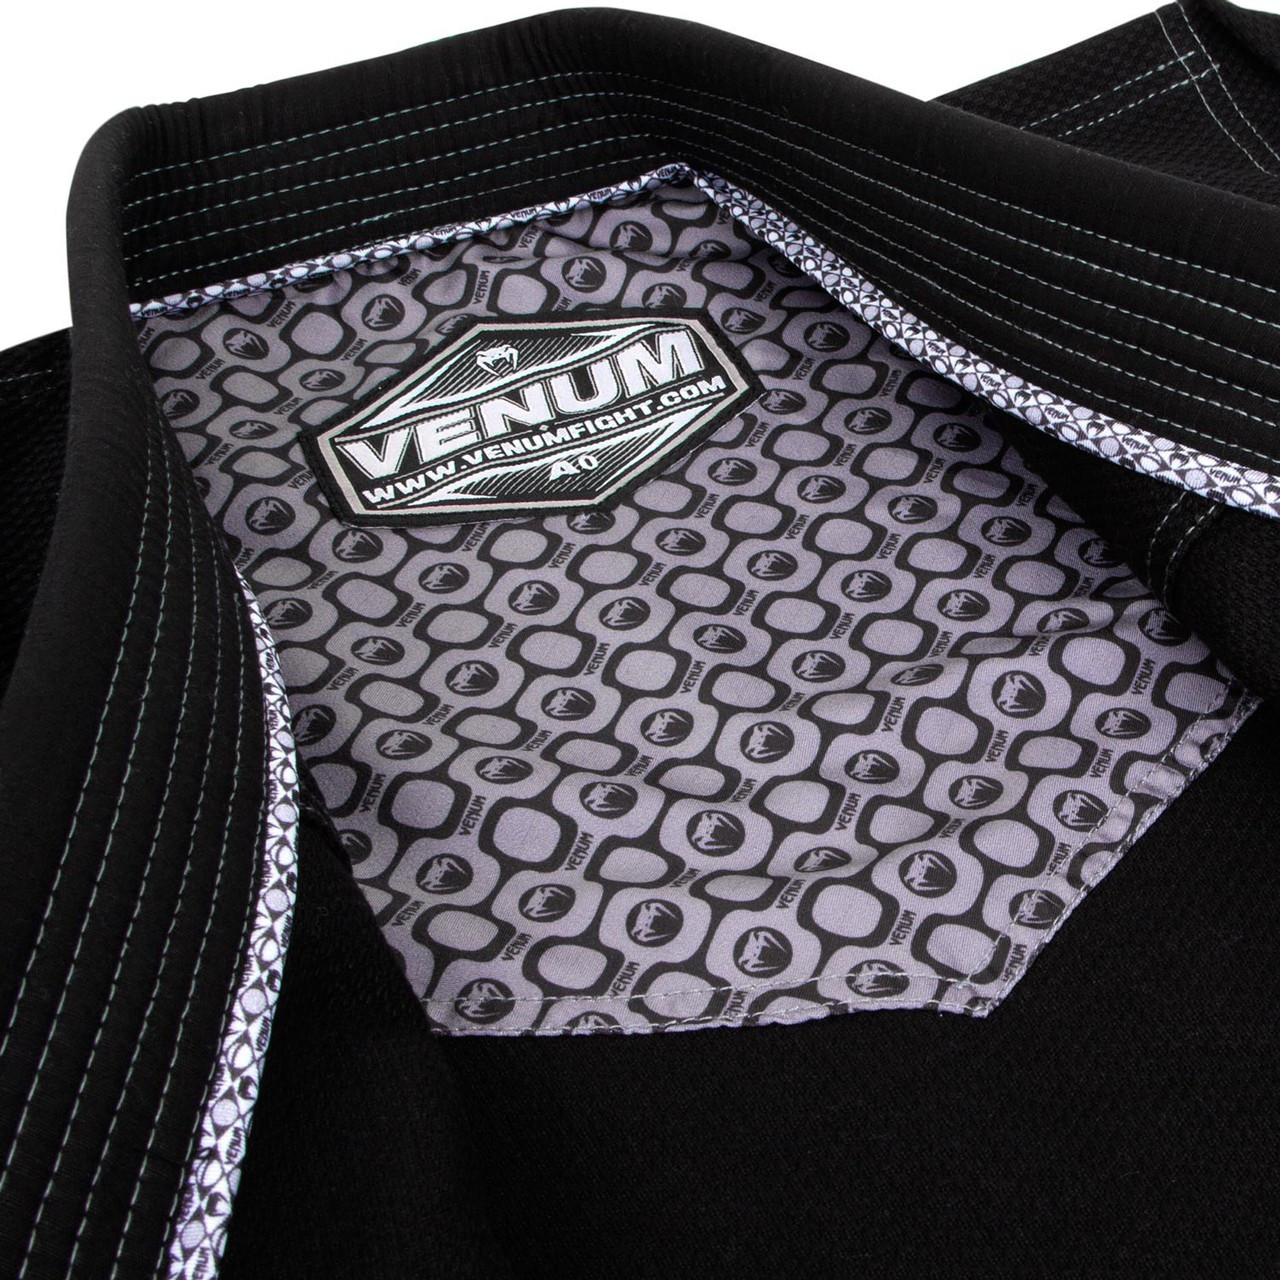 Inside gi jacket of the Venum Elite Classic BJJ GI in Black is now available at www.thejiujitsushop.com  Enjoy Free Shipping from The Jiu Jitsu Shop today!